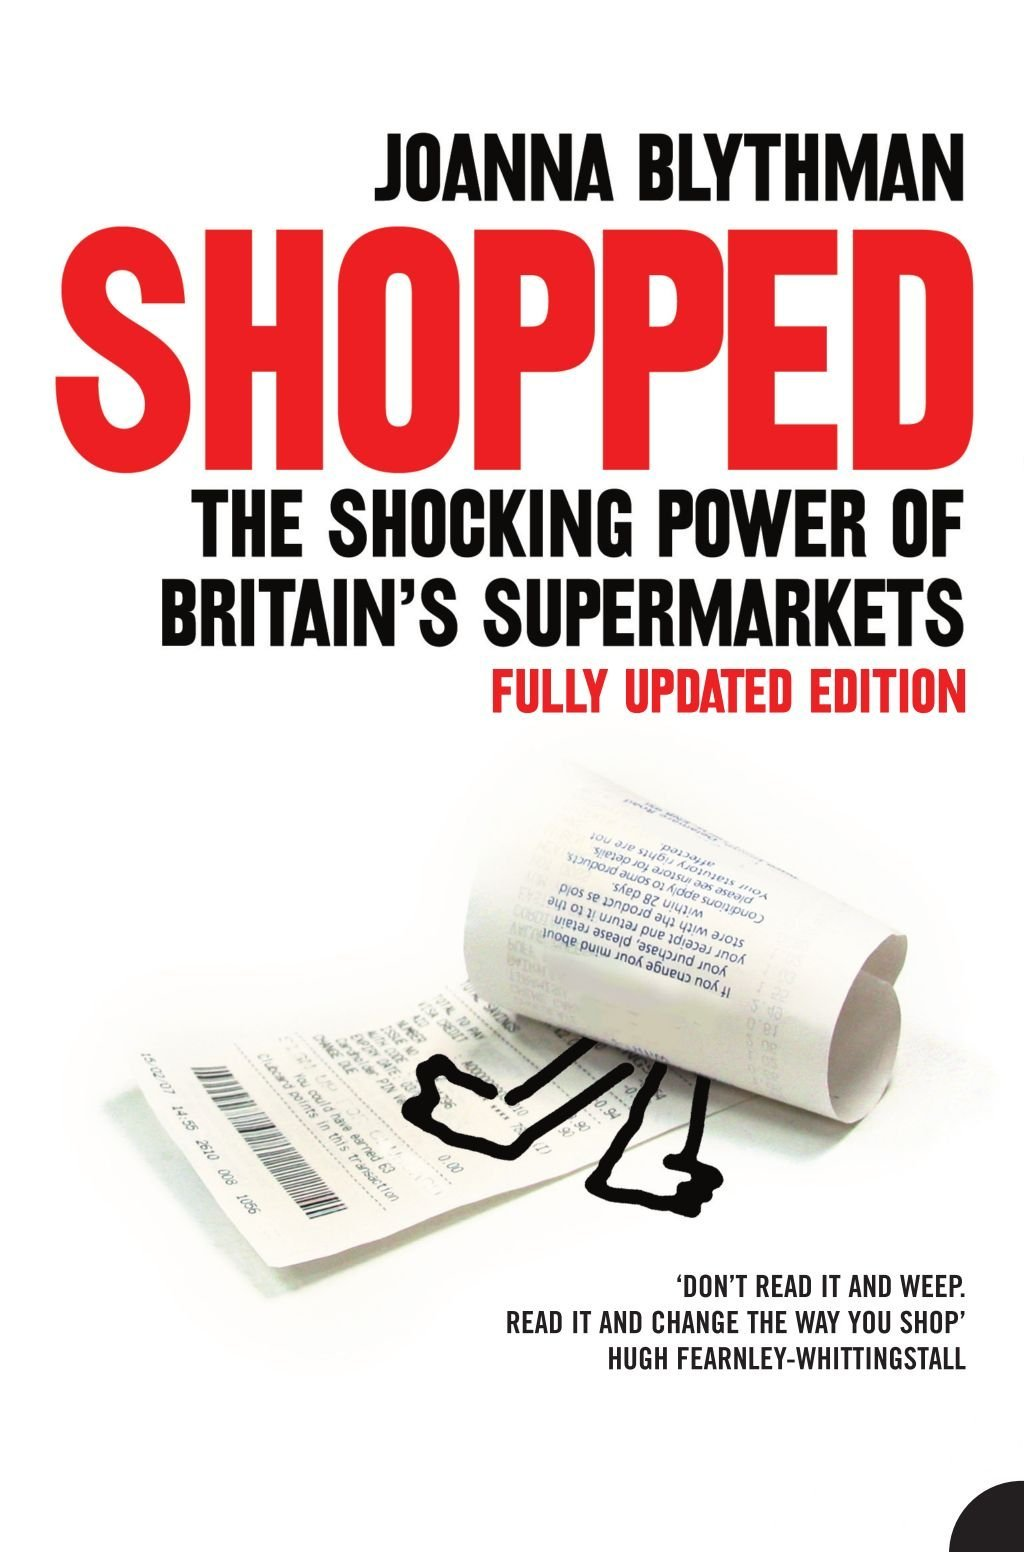 The cover of the book Shopped by Joanna Blythman